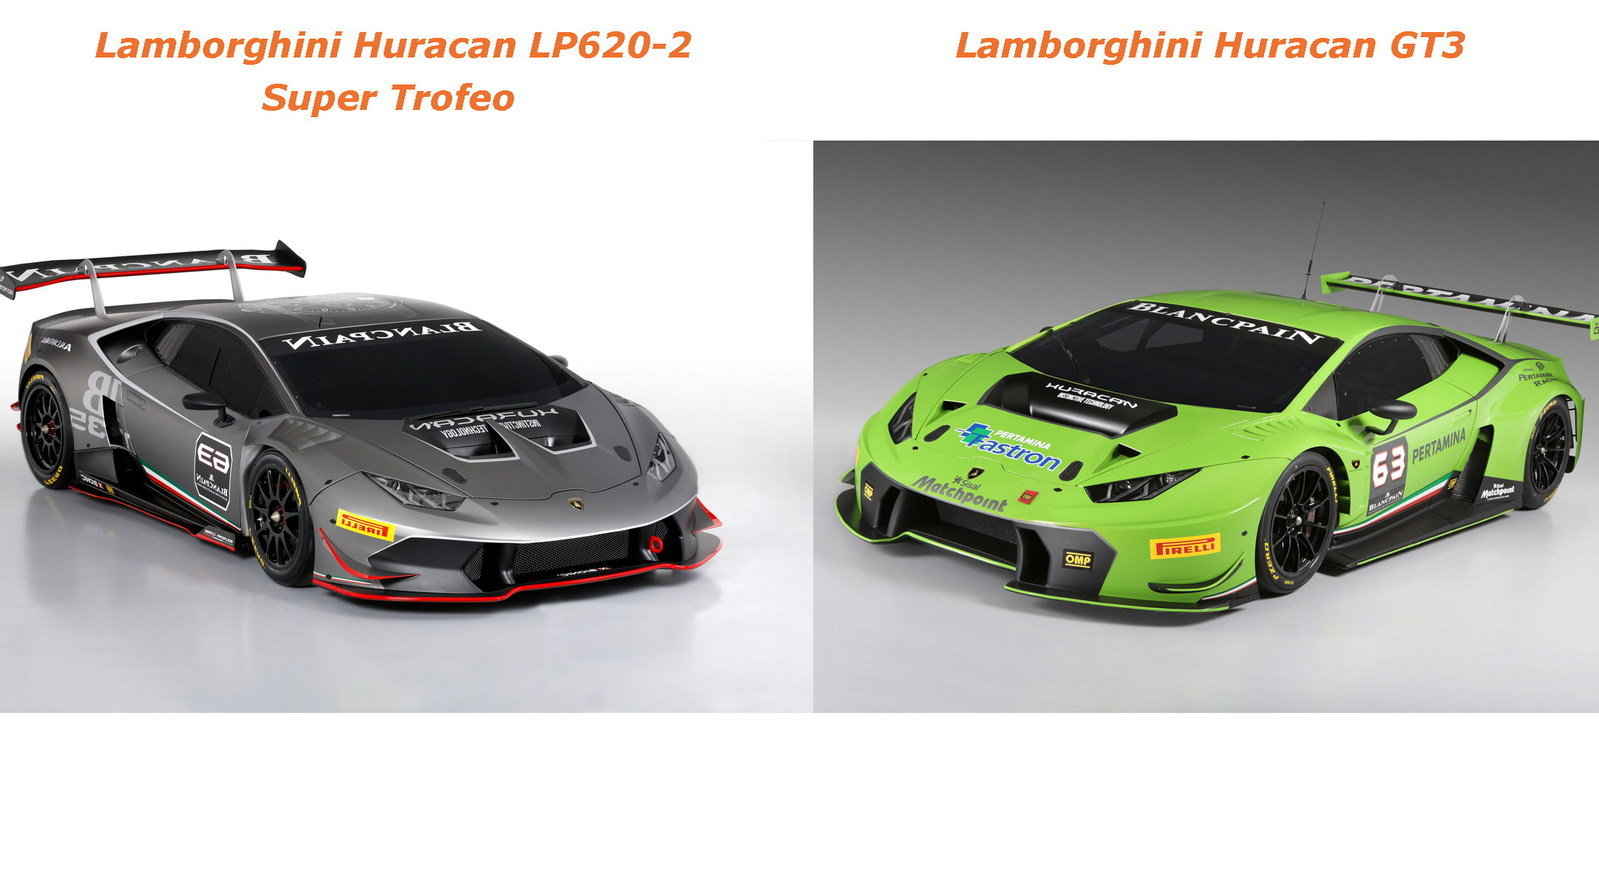 lamborghini huracan gt3 vs lamborghini huracan lp620 2 super trofeo news top speed. Black Bedroom Furniture Sets. Home Design Ideas